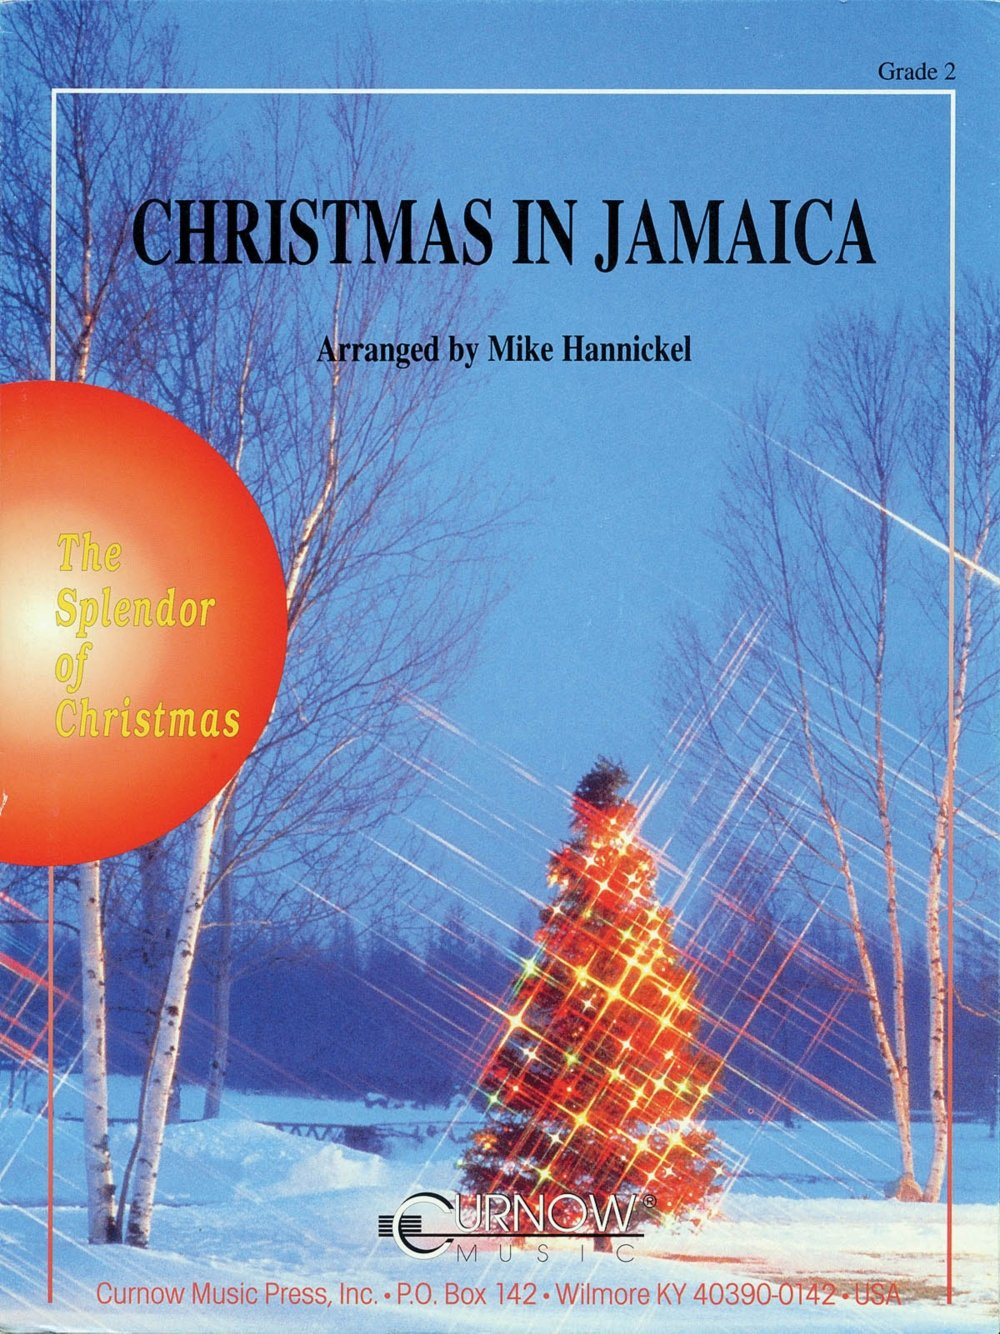 curnow music christmas in jamaica grade 2 score and parts concert band level 2 arranged by mike hannickel curnow music 0073999632545 amazoncom